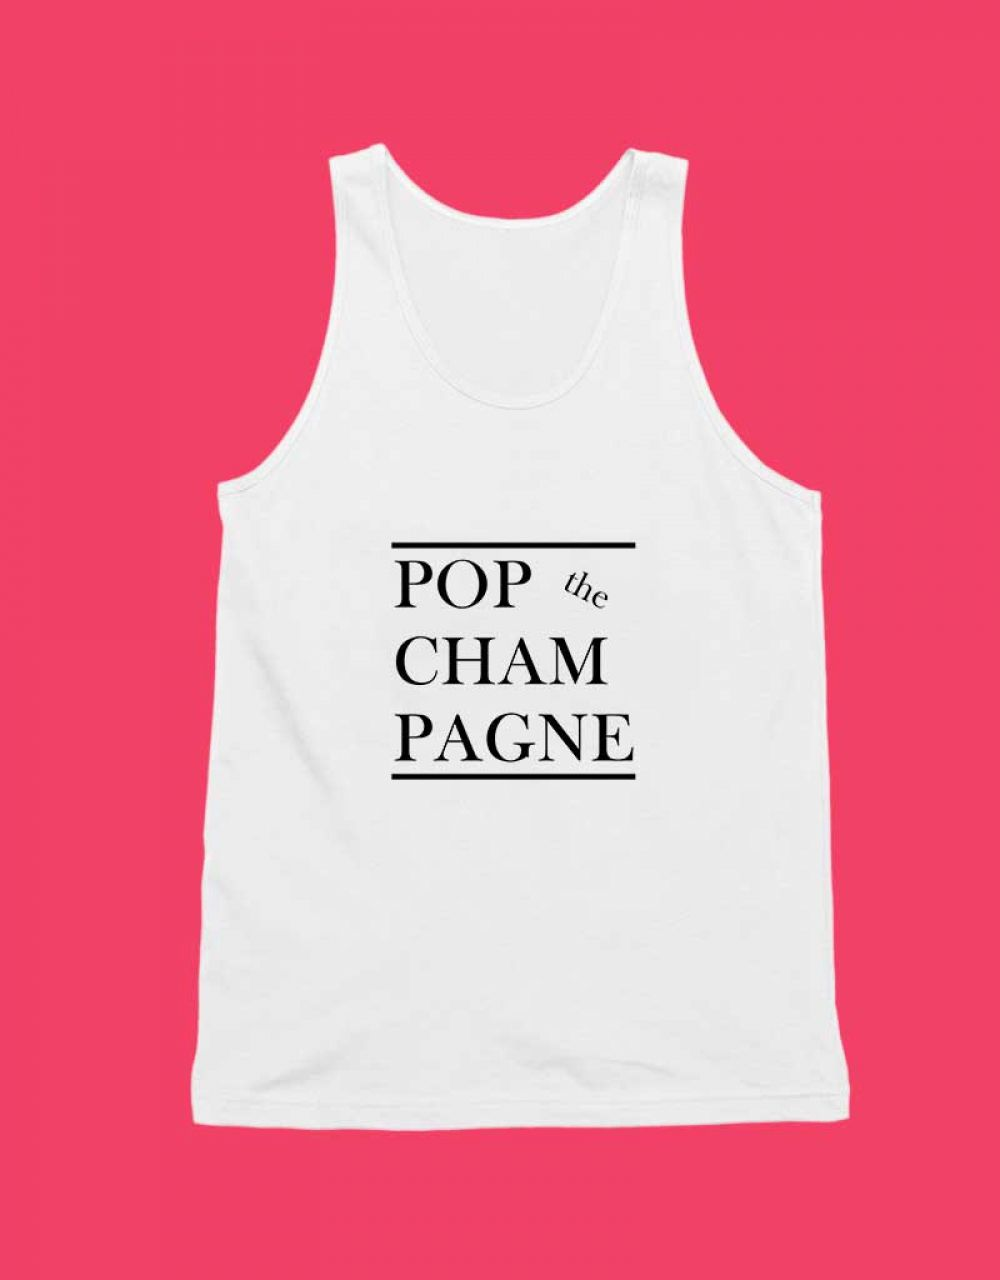 Pop The Cham Pagne Unisex 13 50 Shirts